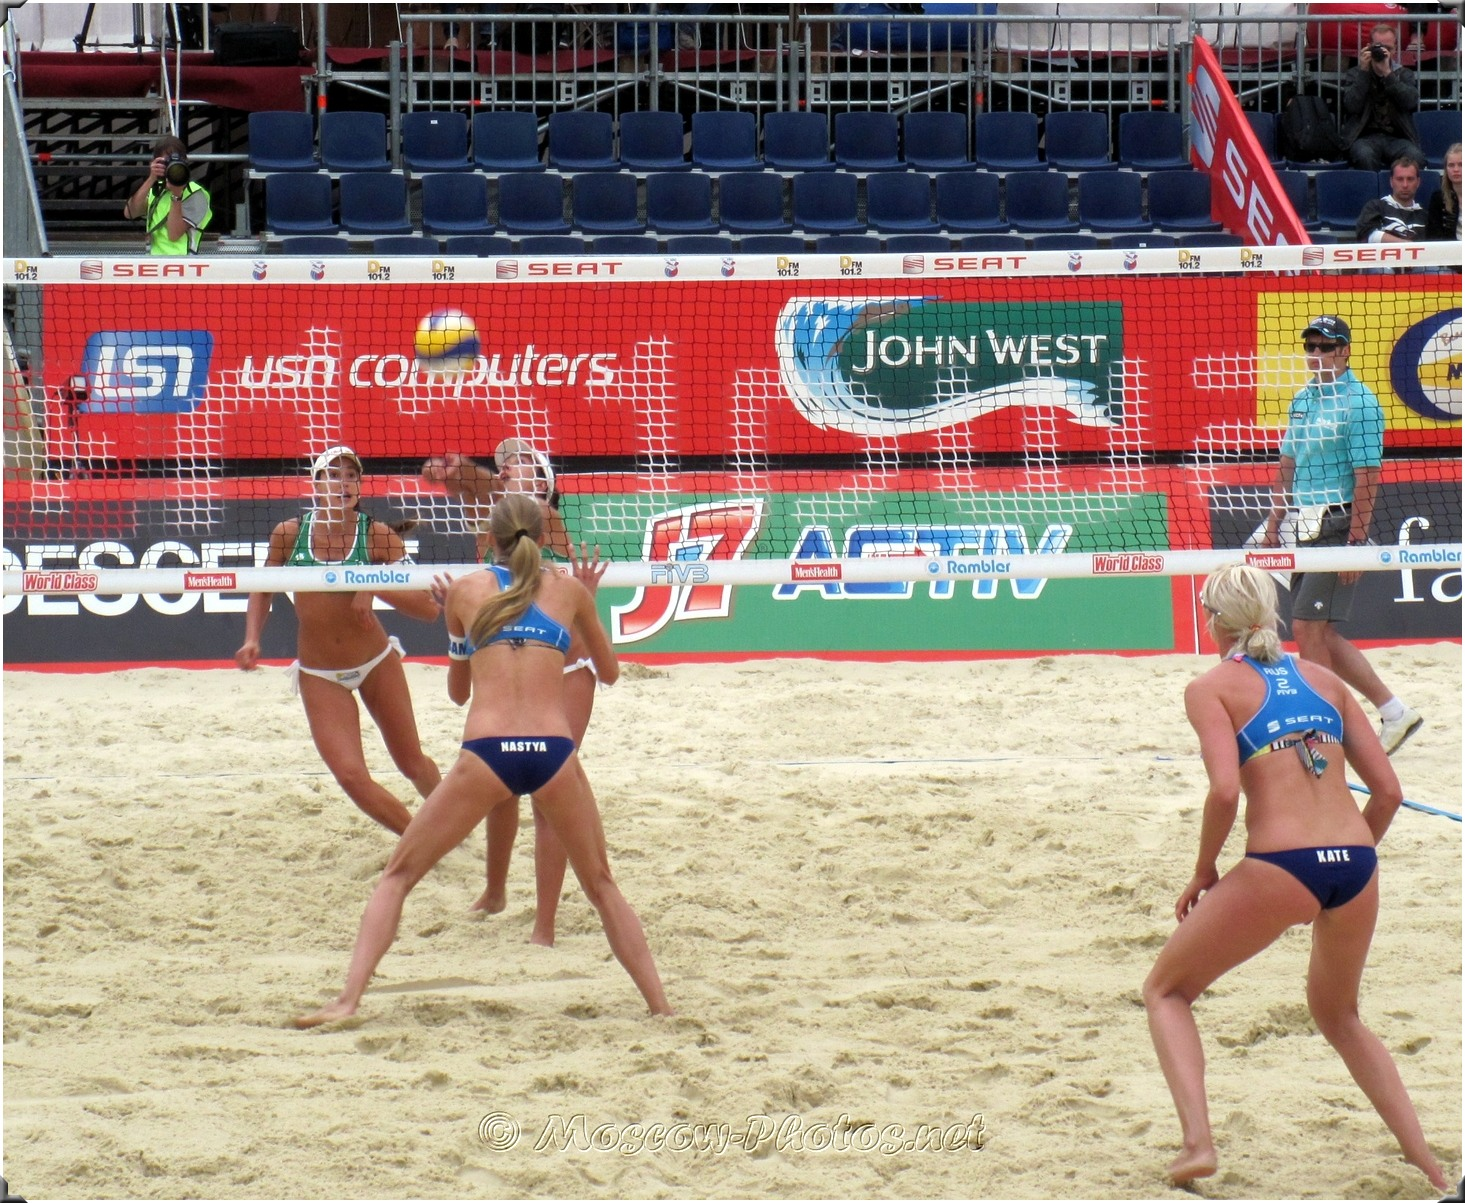 Ball In Play - Moscow Beach Volleyball 2010